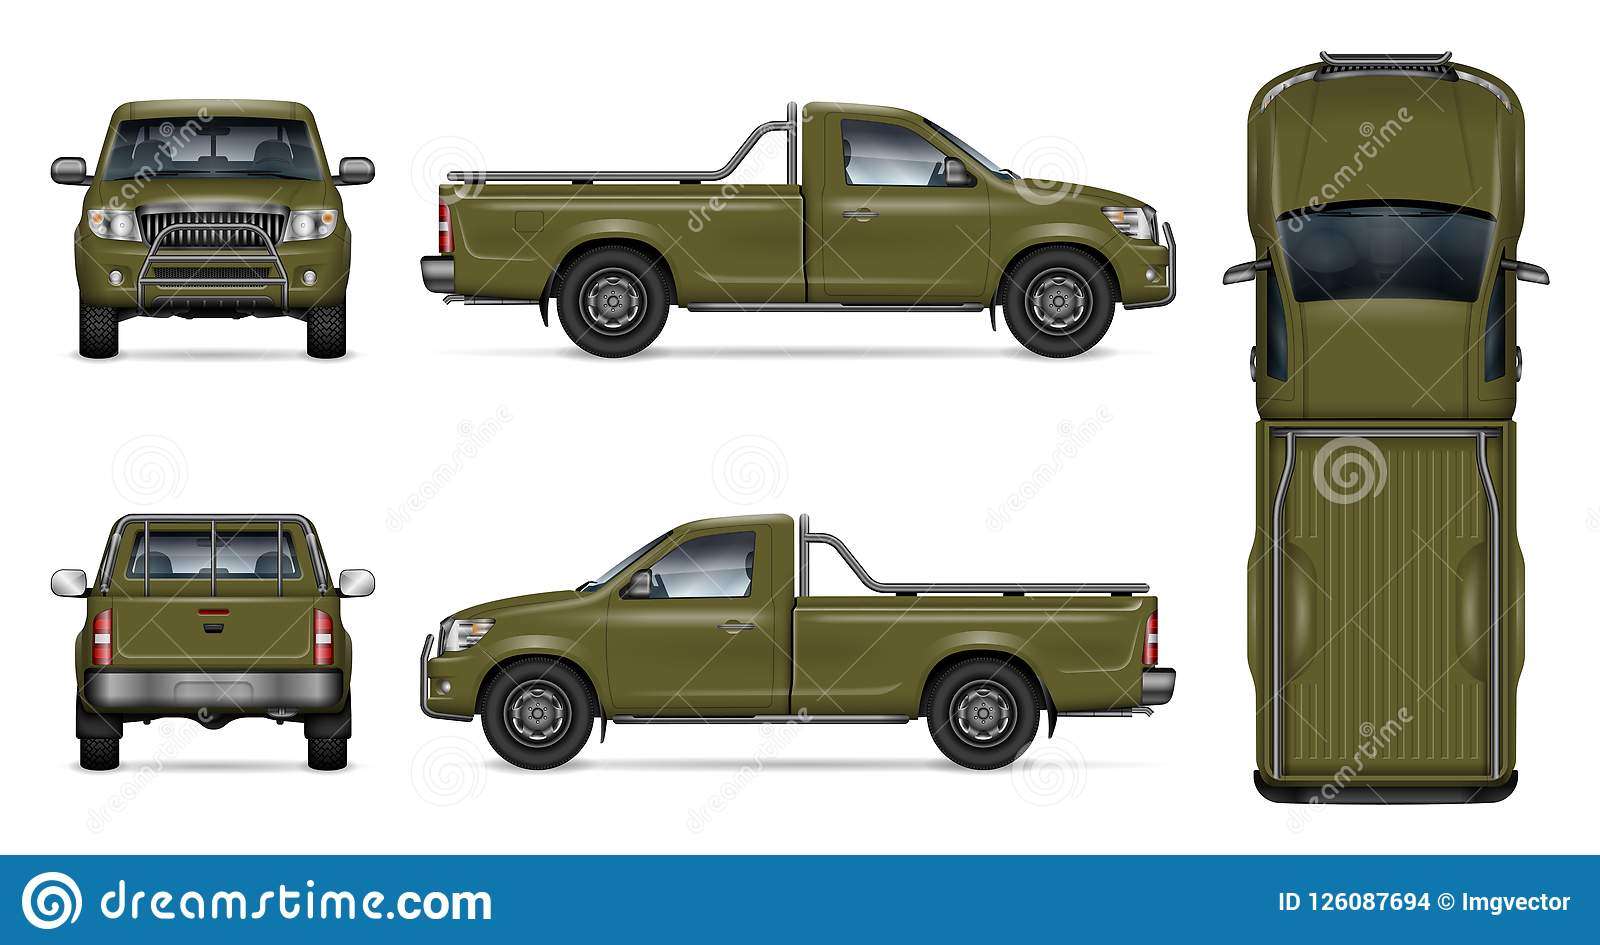 Realistic Green Pickup Truck Vector Illustration Stock Vector Illustration Of Duty Back 126087694